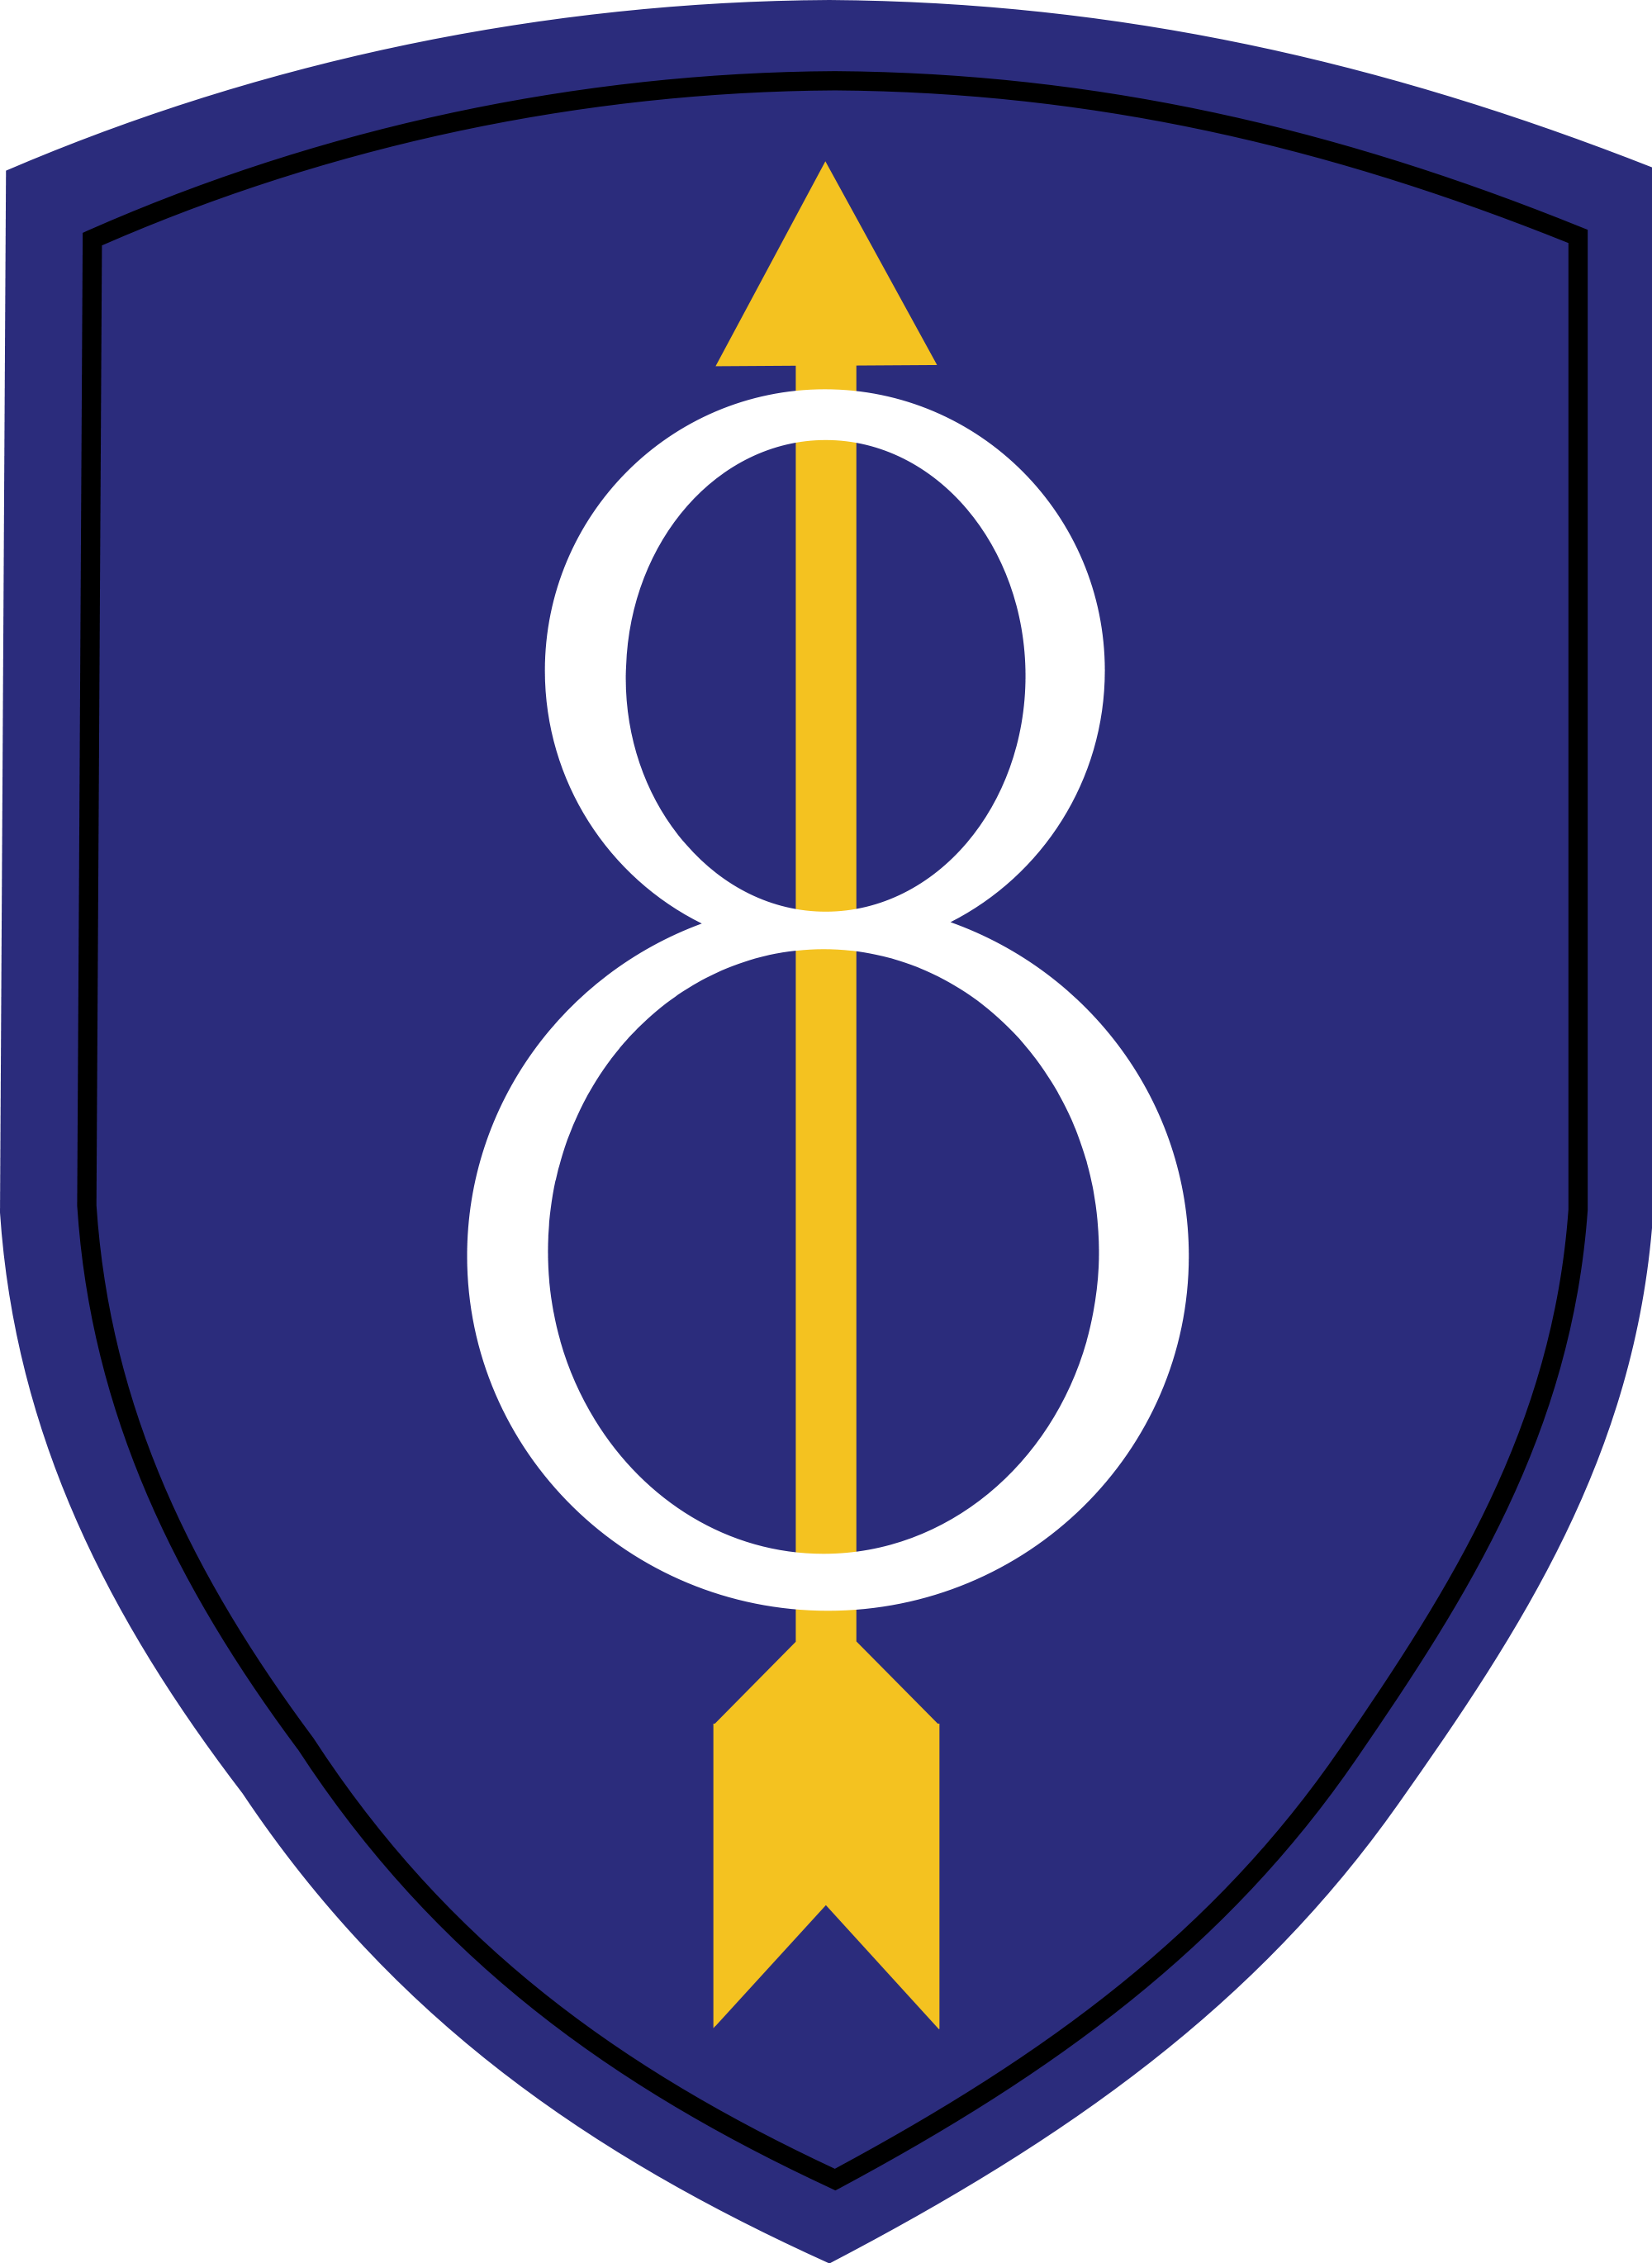 8th Infantry Division Baumholder, Germany Infantry